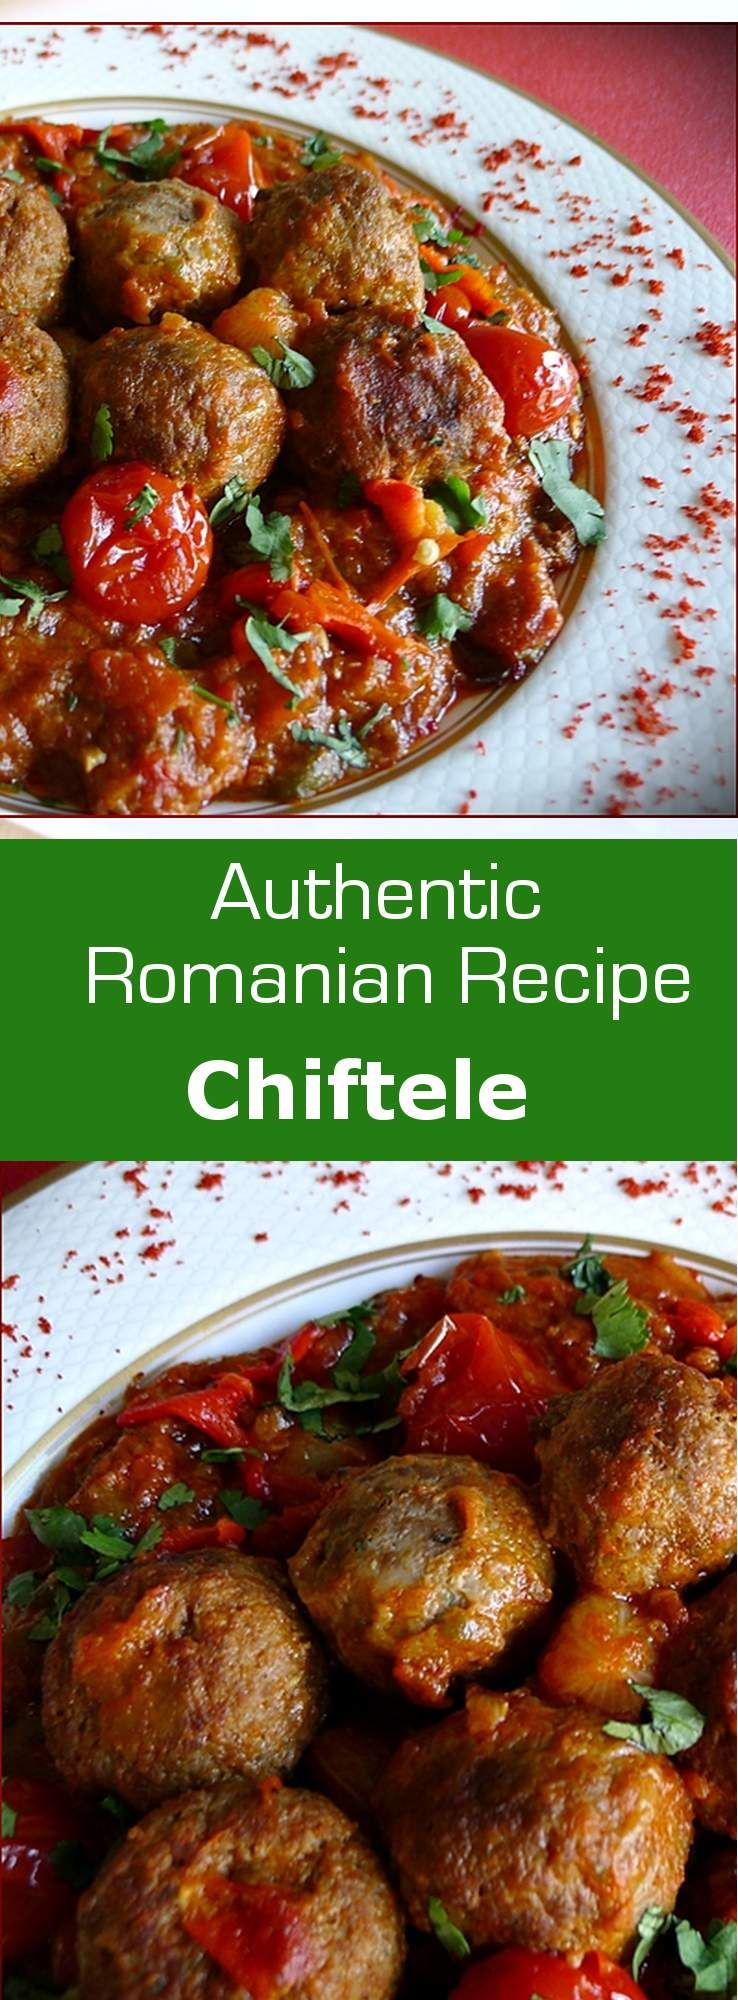 Chiftele Are Romanian Meatballs Where The Meat Is Ground With Raw Vegetables Before Being Fried